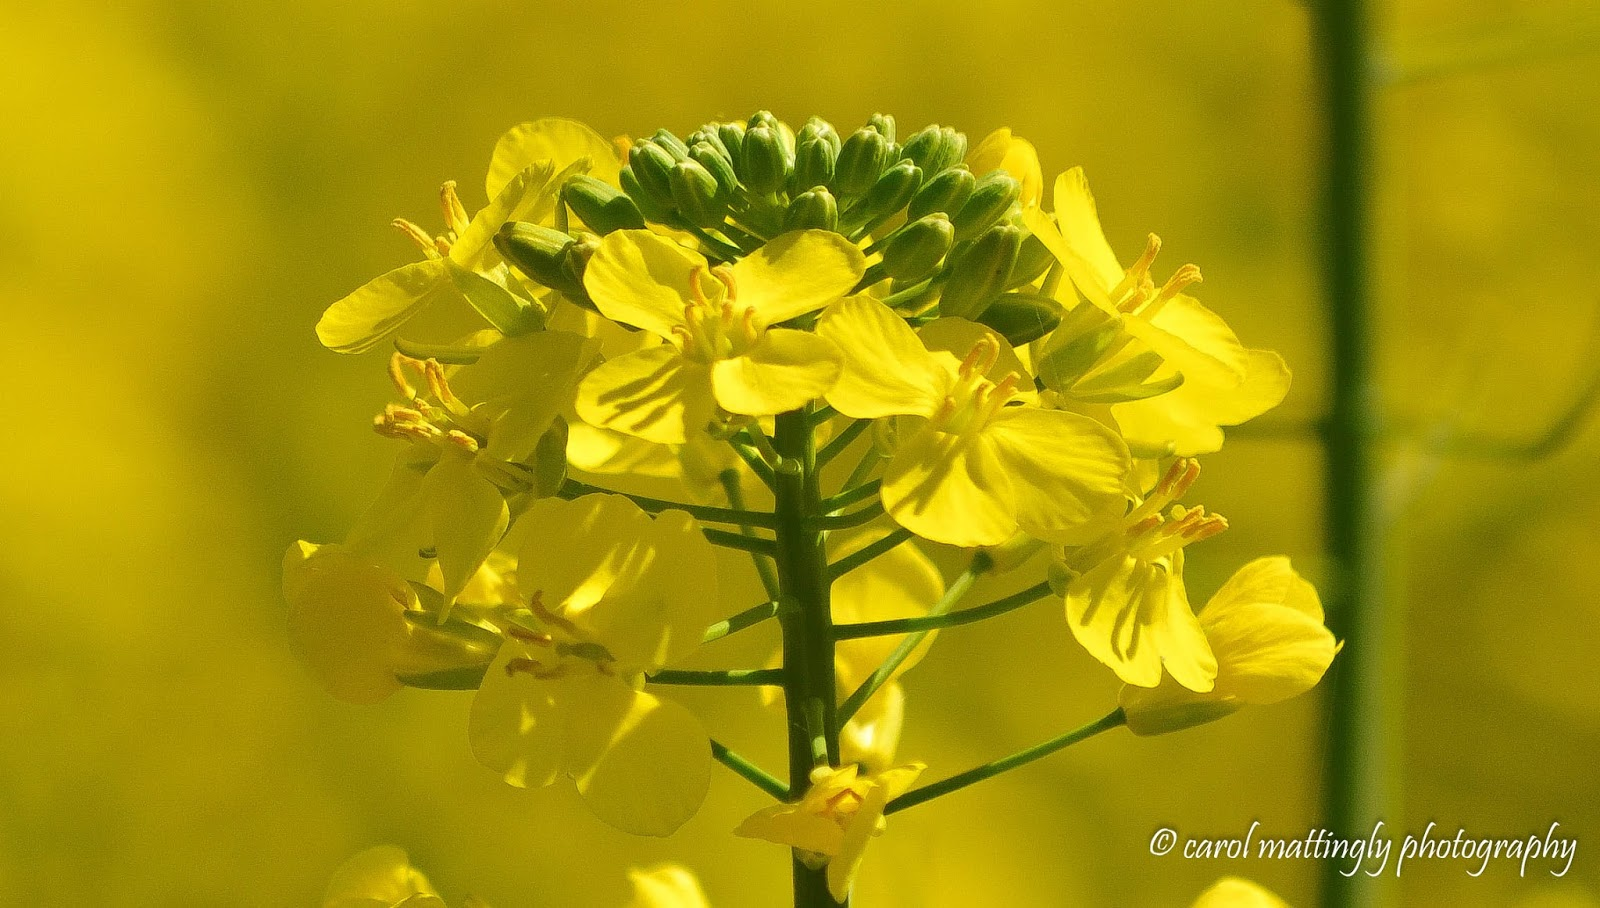 carol mattingly photography canola fields of northern tennessee